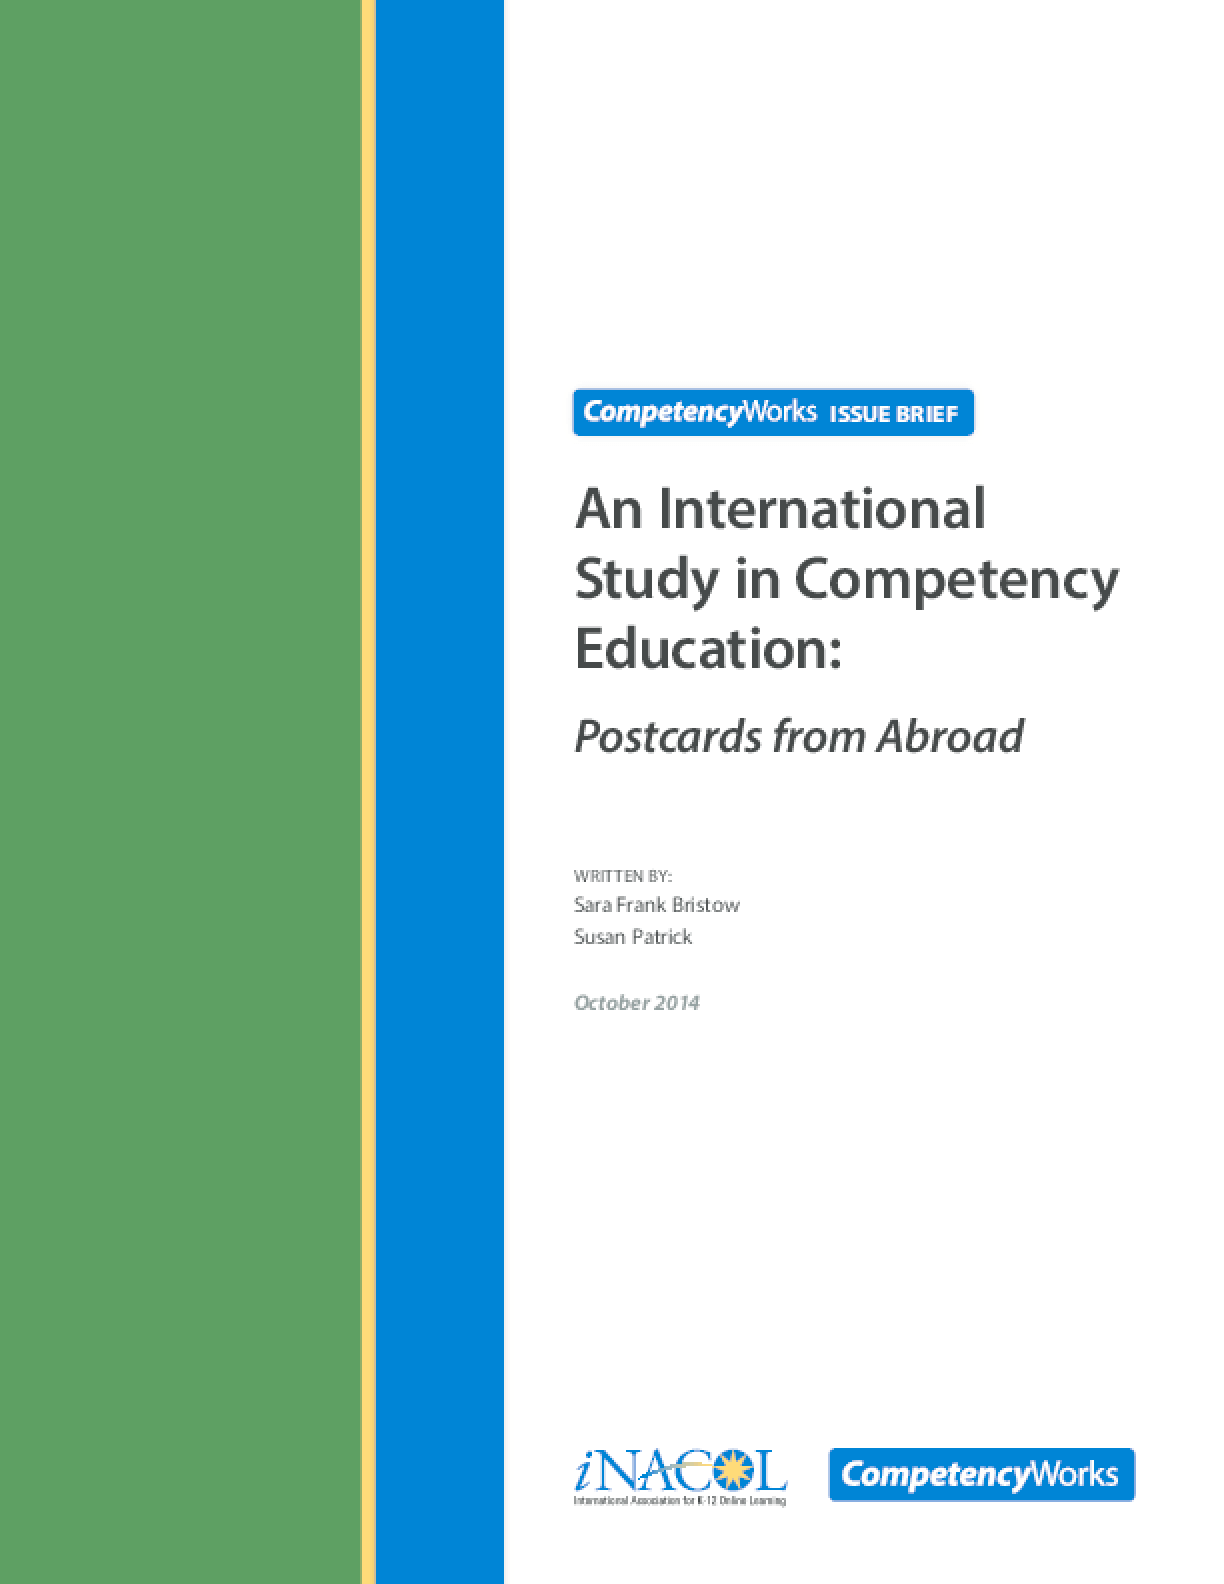 An International Study in Competency Education: Postcards from Abroad